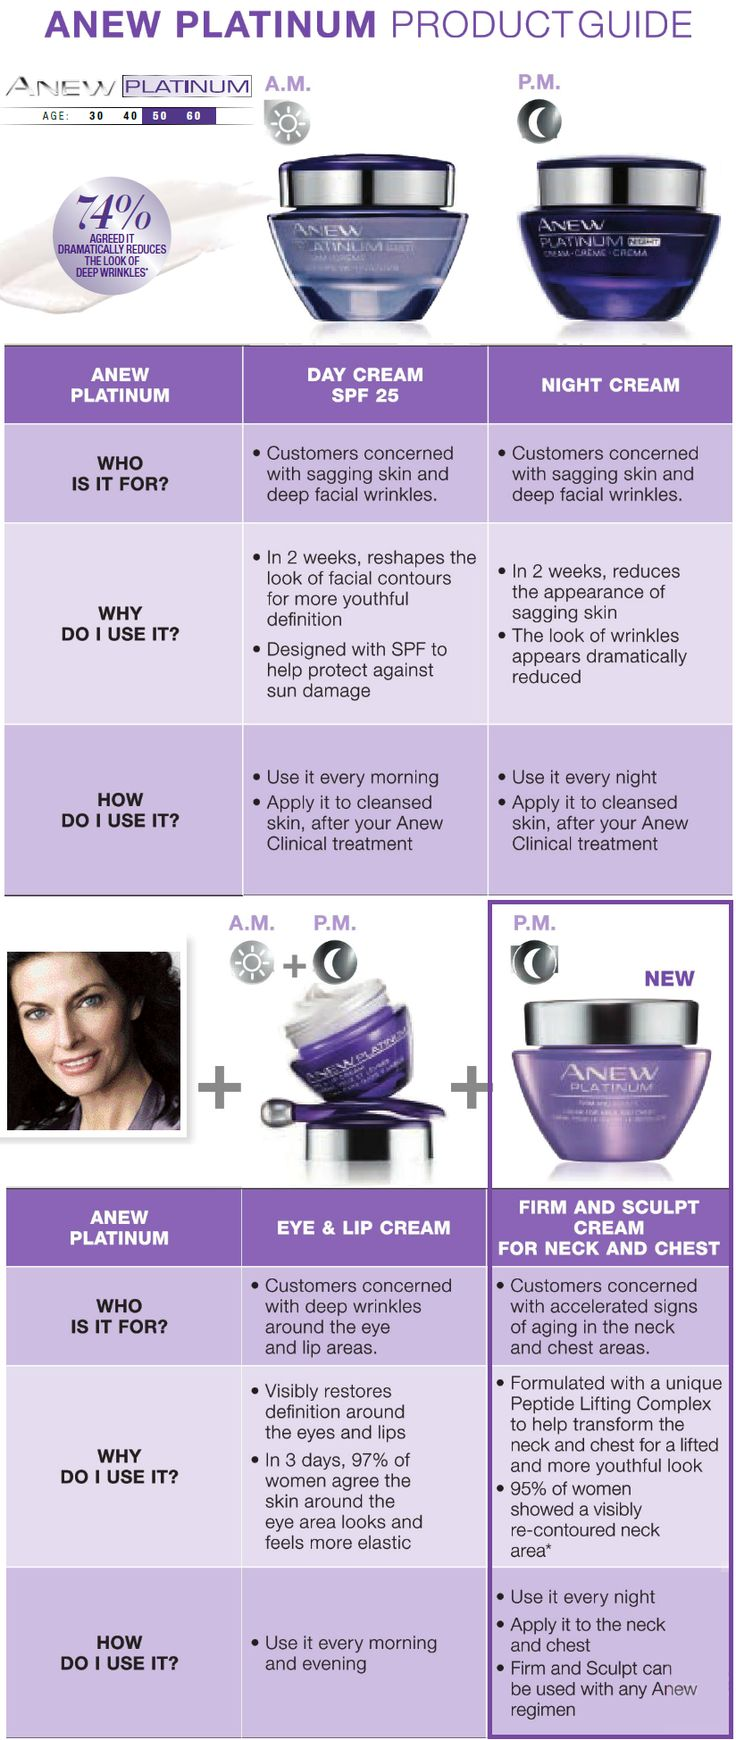 PRIZE GIVEAWAY: One winner will be selected on Mother's Day for our new, ANEW PLATINUM FIRM AND SCULPT Cream for Neck and Chest. Click on picture and be redirected to my Avon Business page.  Like and Share the Mother's Day Giveaway.